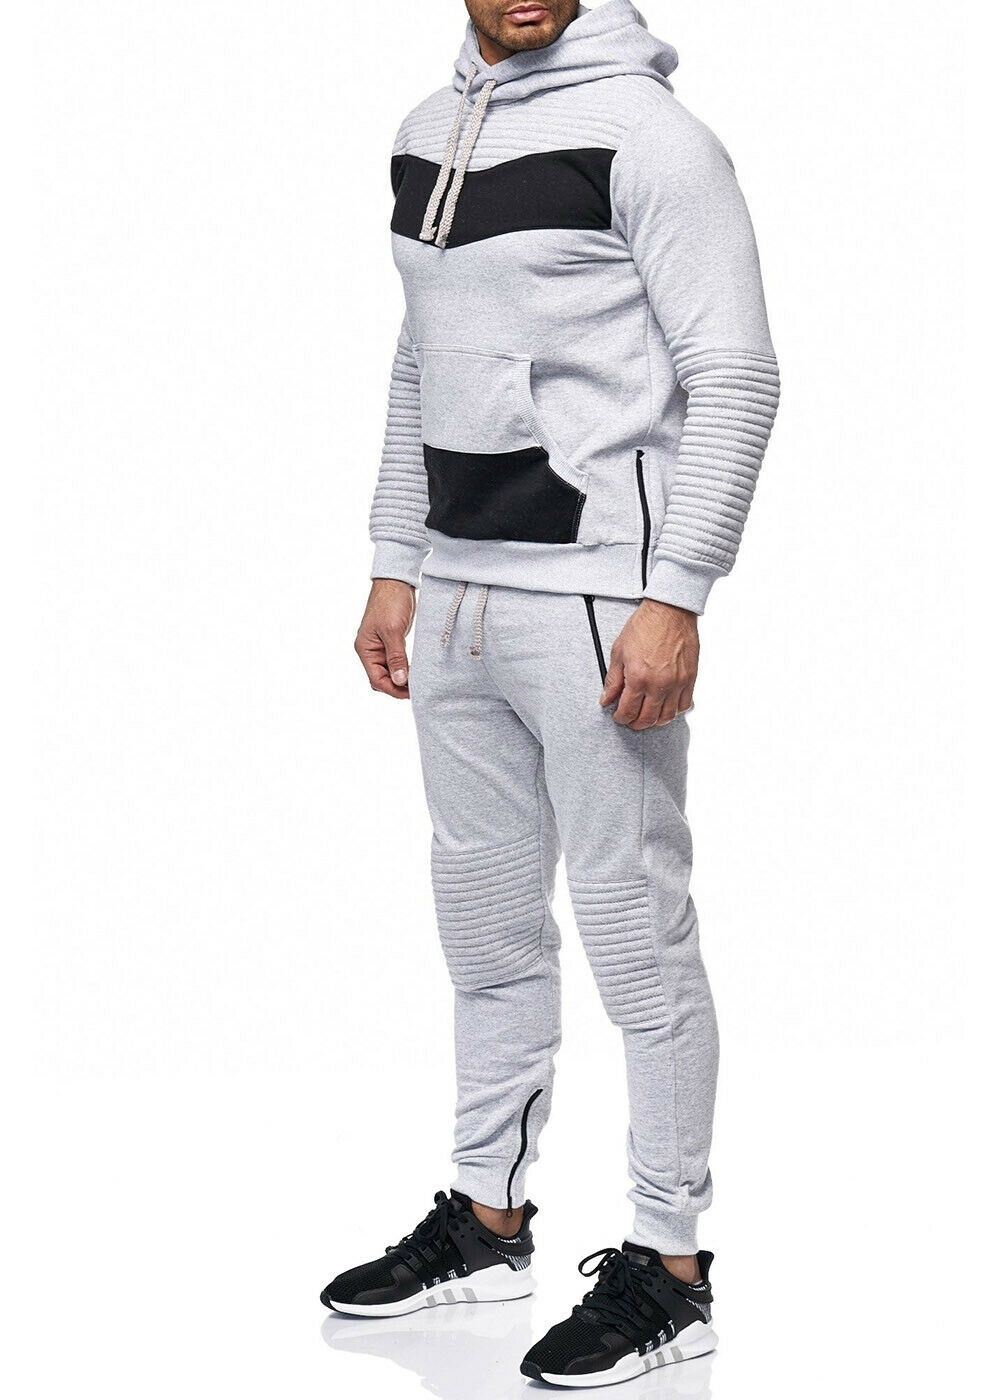 Zogaa Men Tracksuit New Fashion Jacket Sportswear Men Sweat Suit Hoodies Spring And Autumn Men's Brand Hoodies Pants